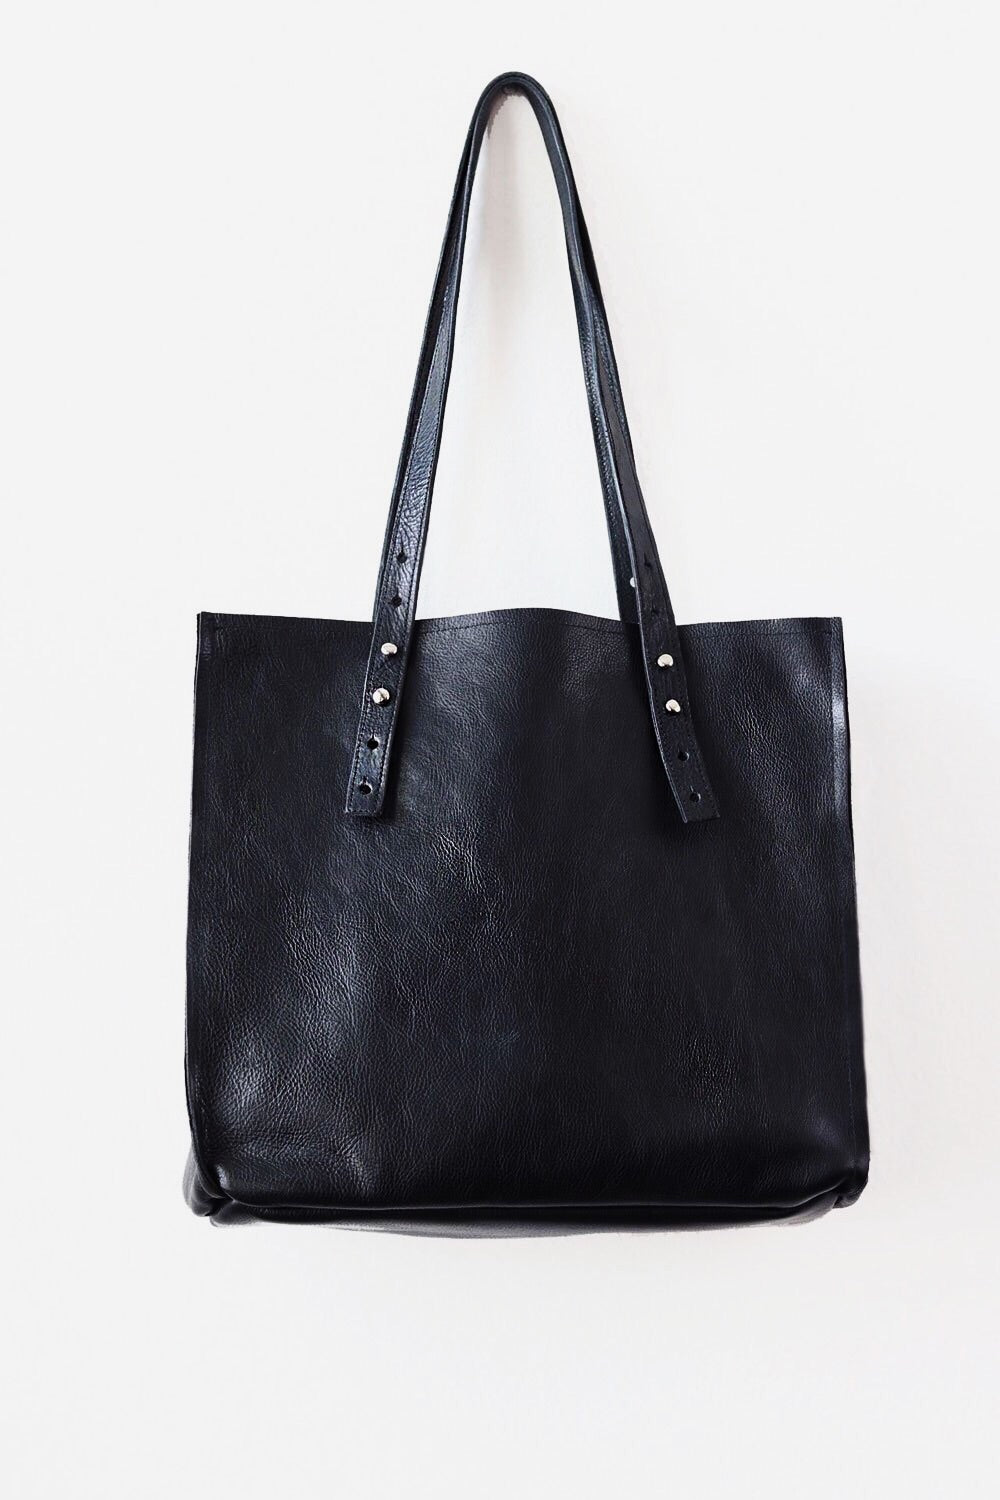 large leather black tote bag